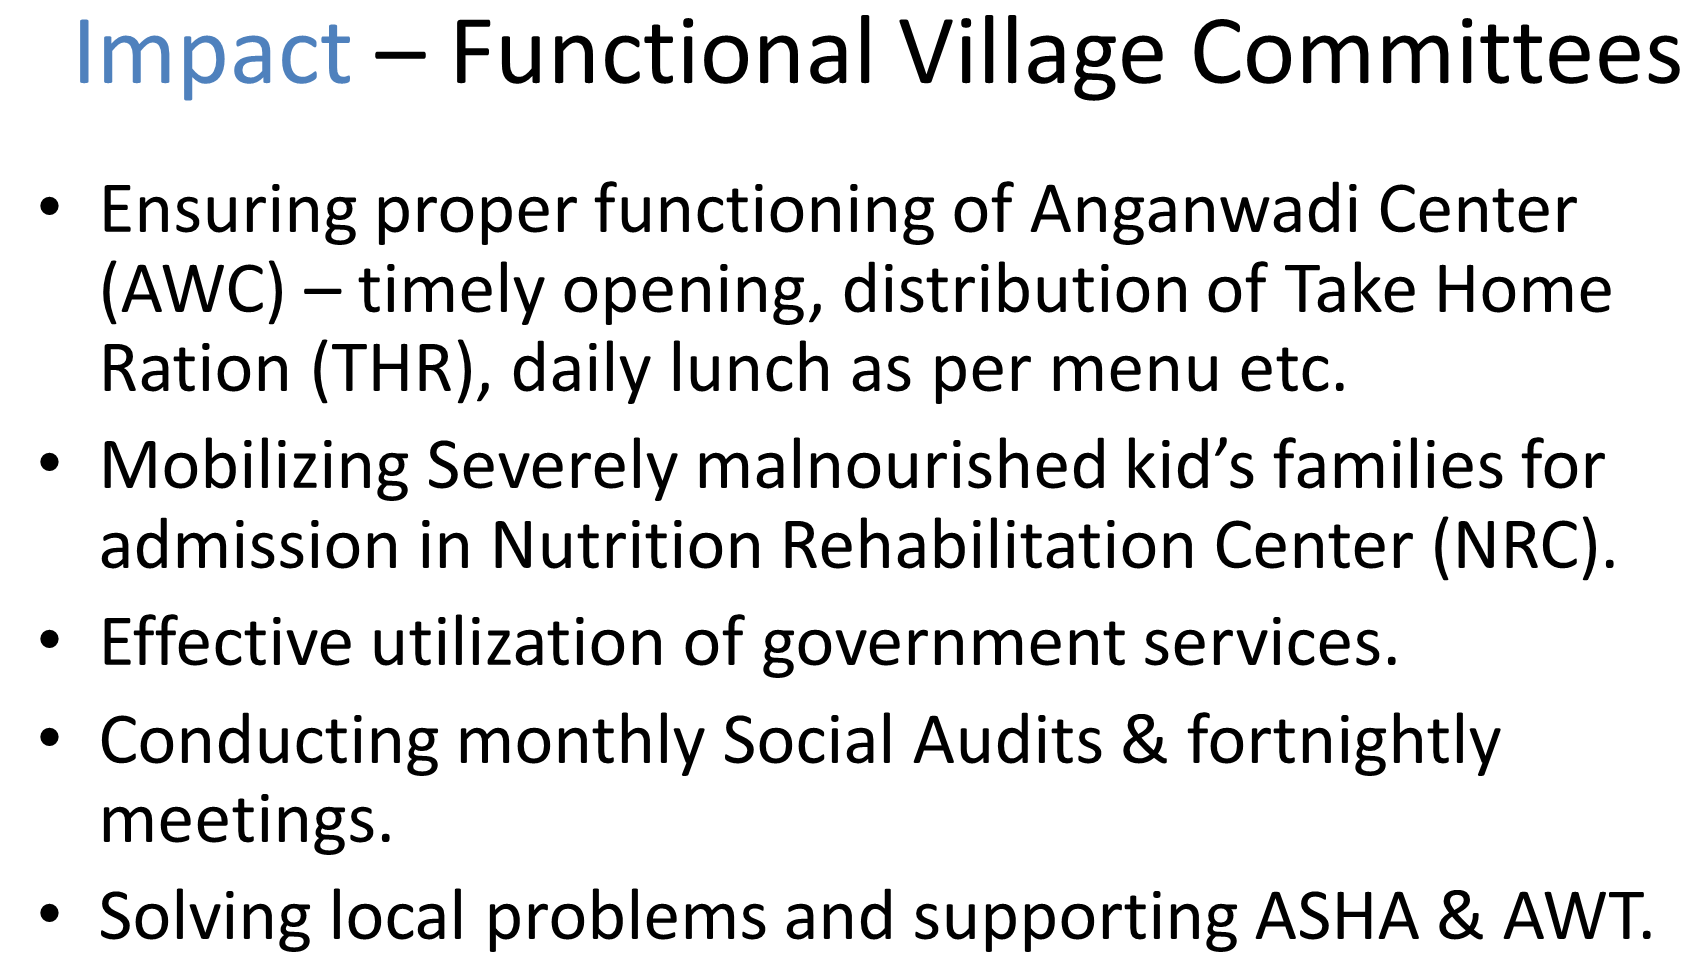 Impact-Functional Village Committees